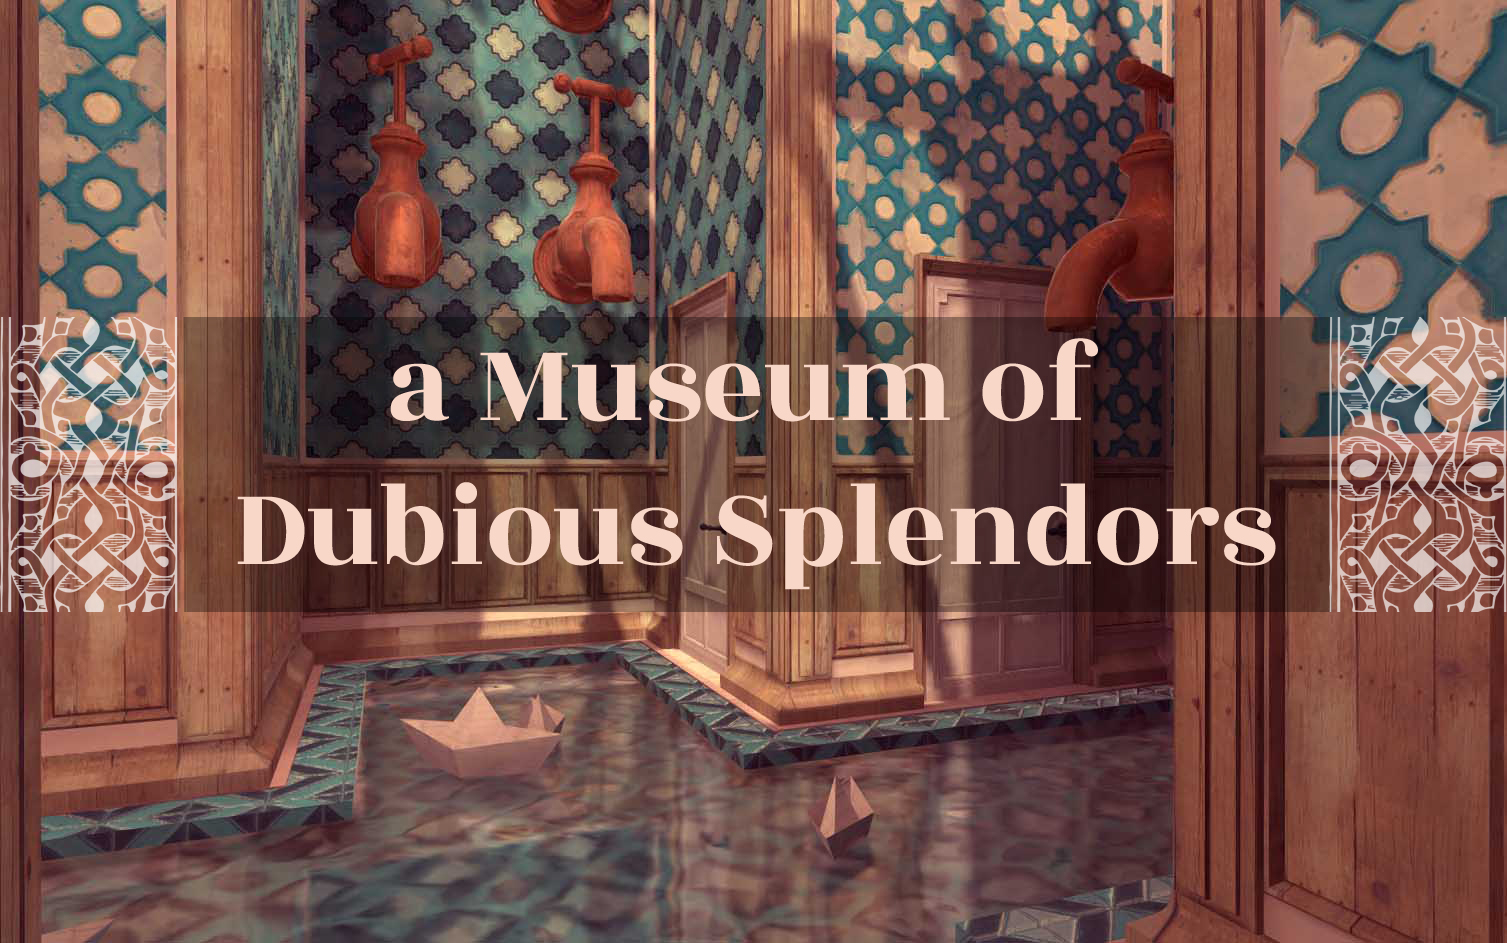 a Museum of Dubious Splendors.